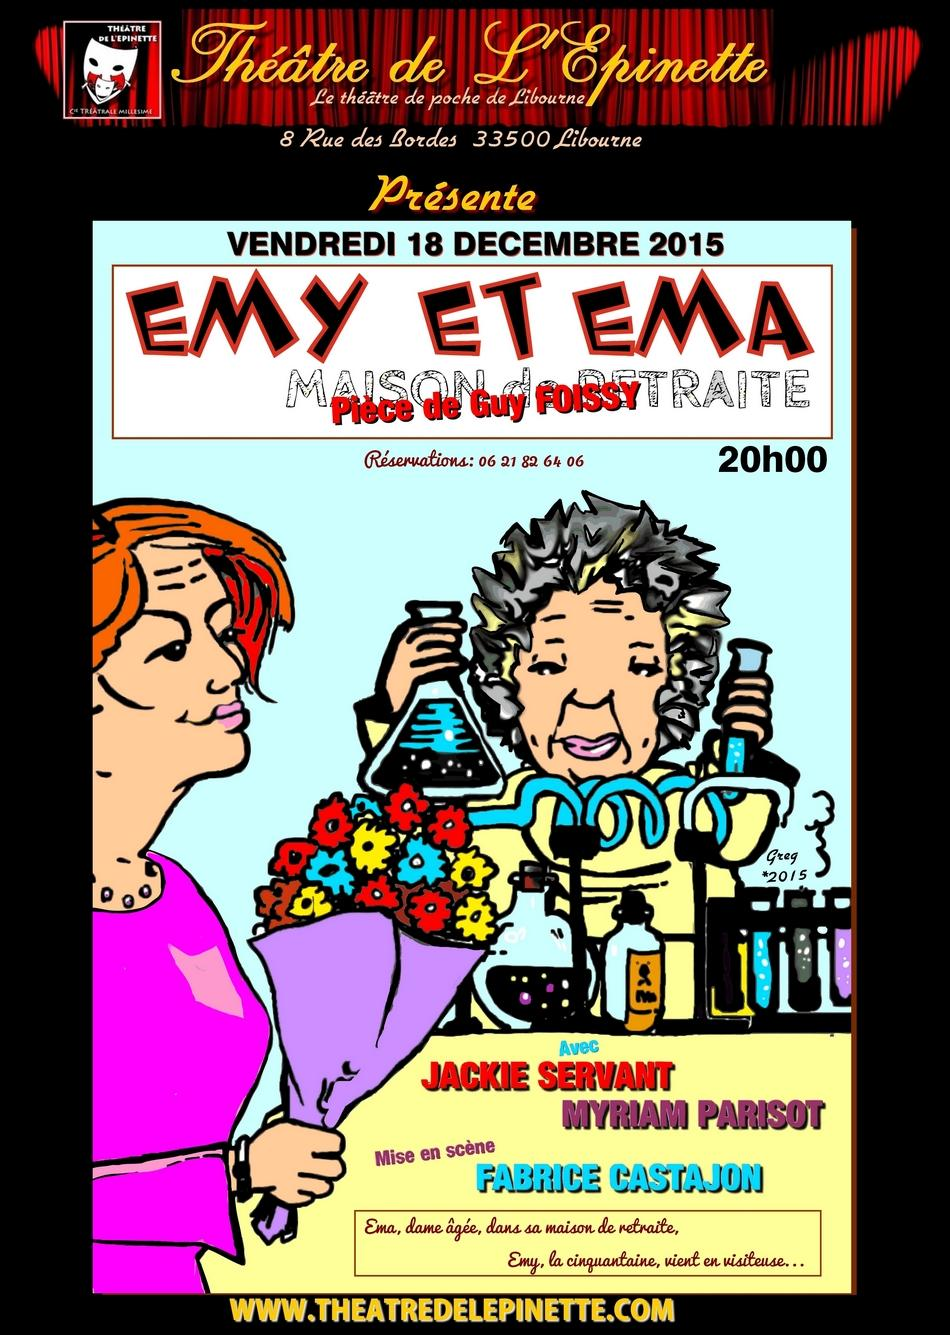 Emy et ema v 18 dec 2015 20h web